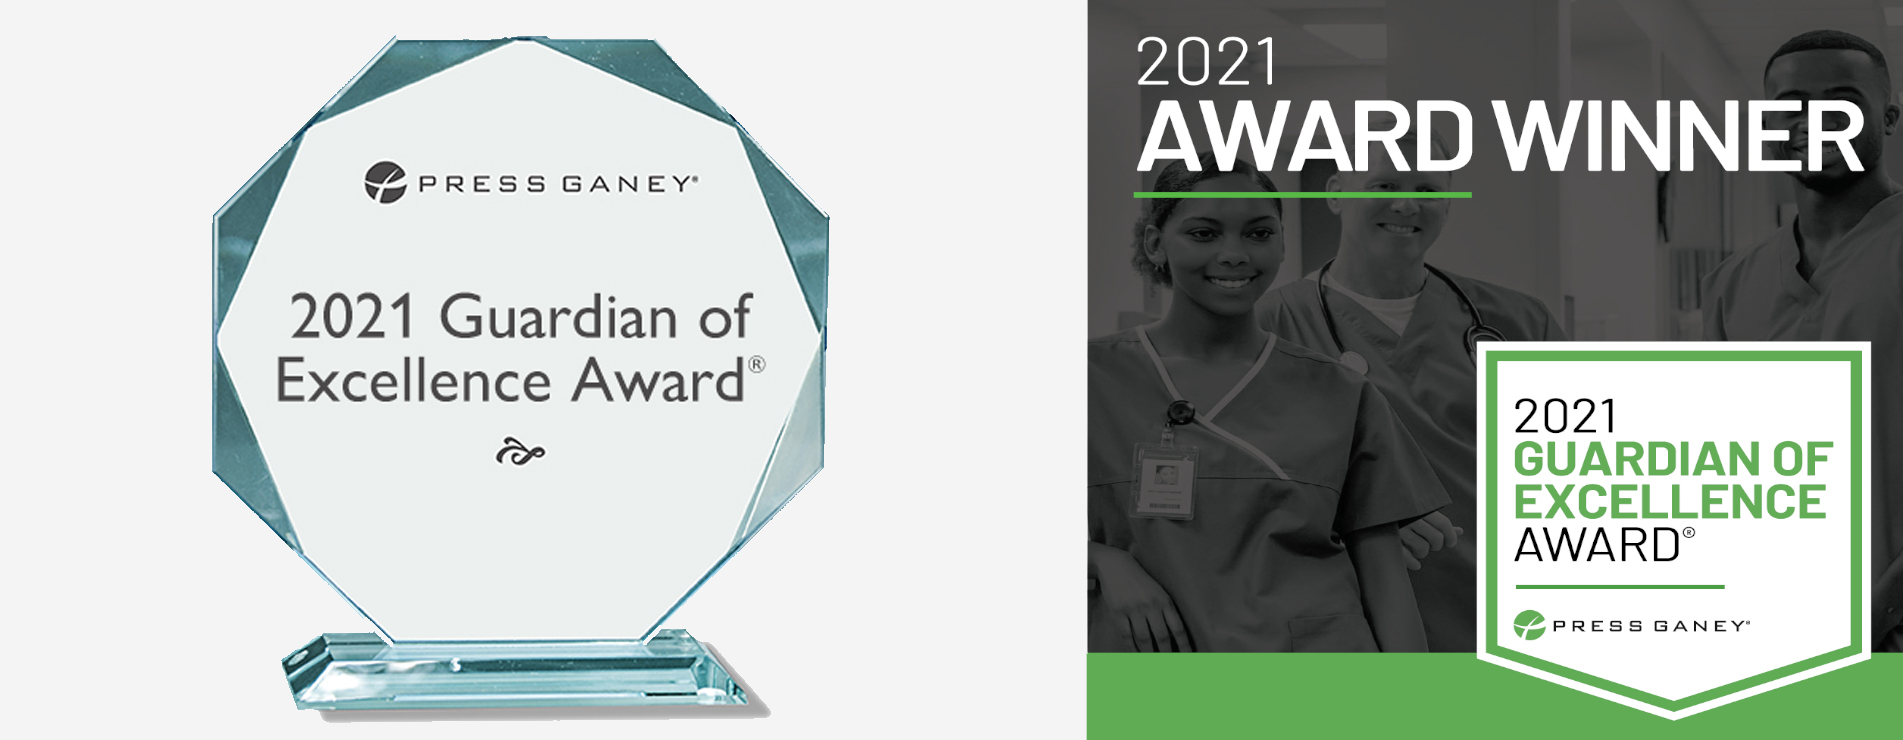 Press Ganey 2021 Guardian of Excellence Award